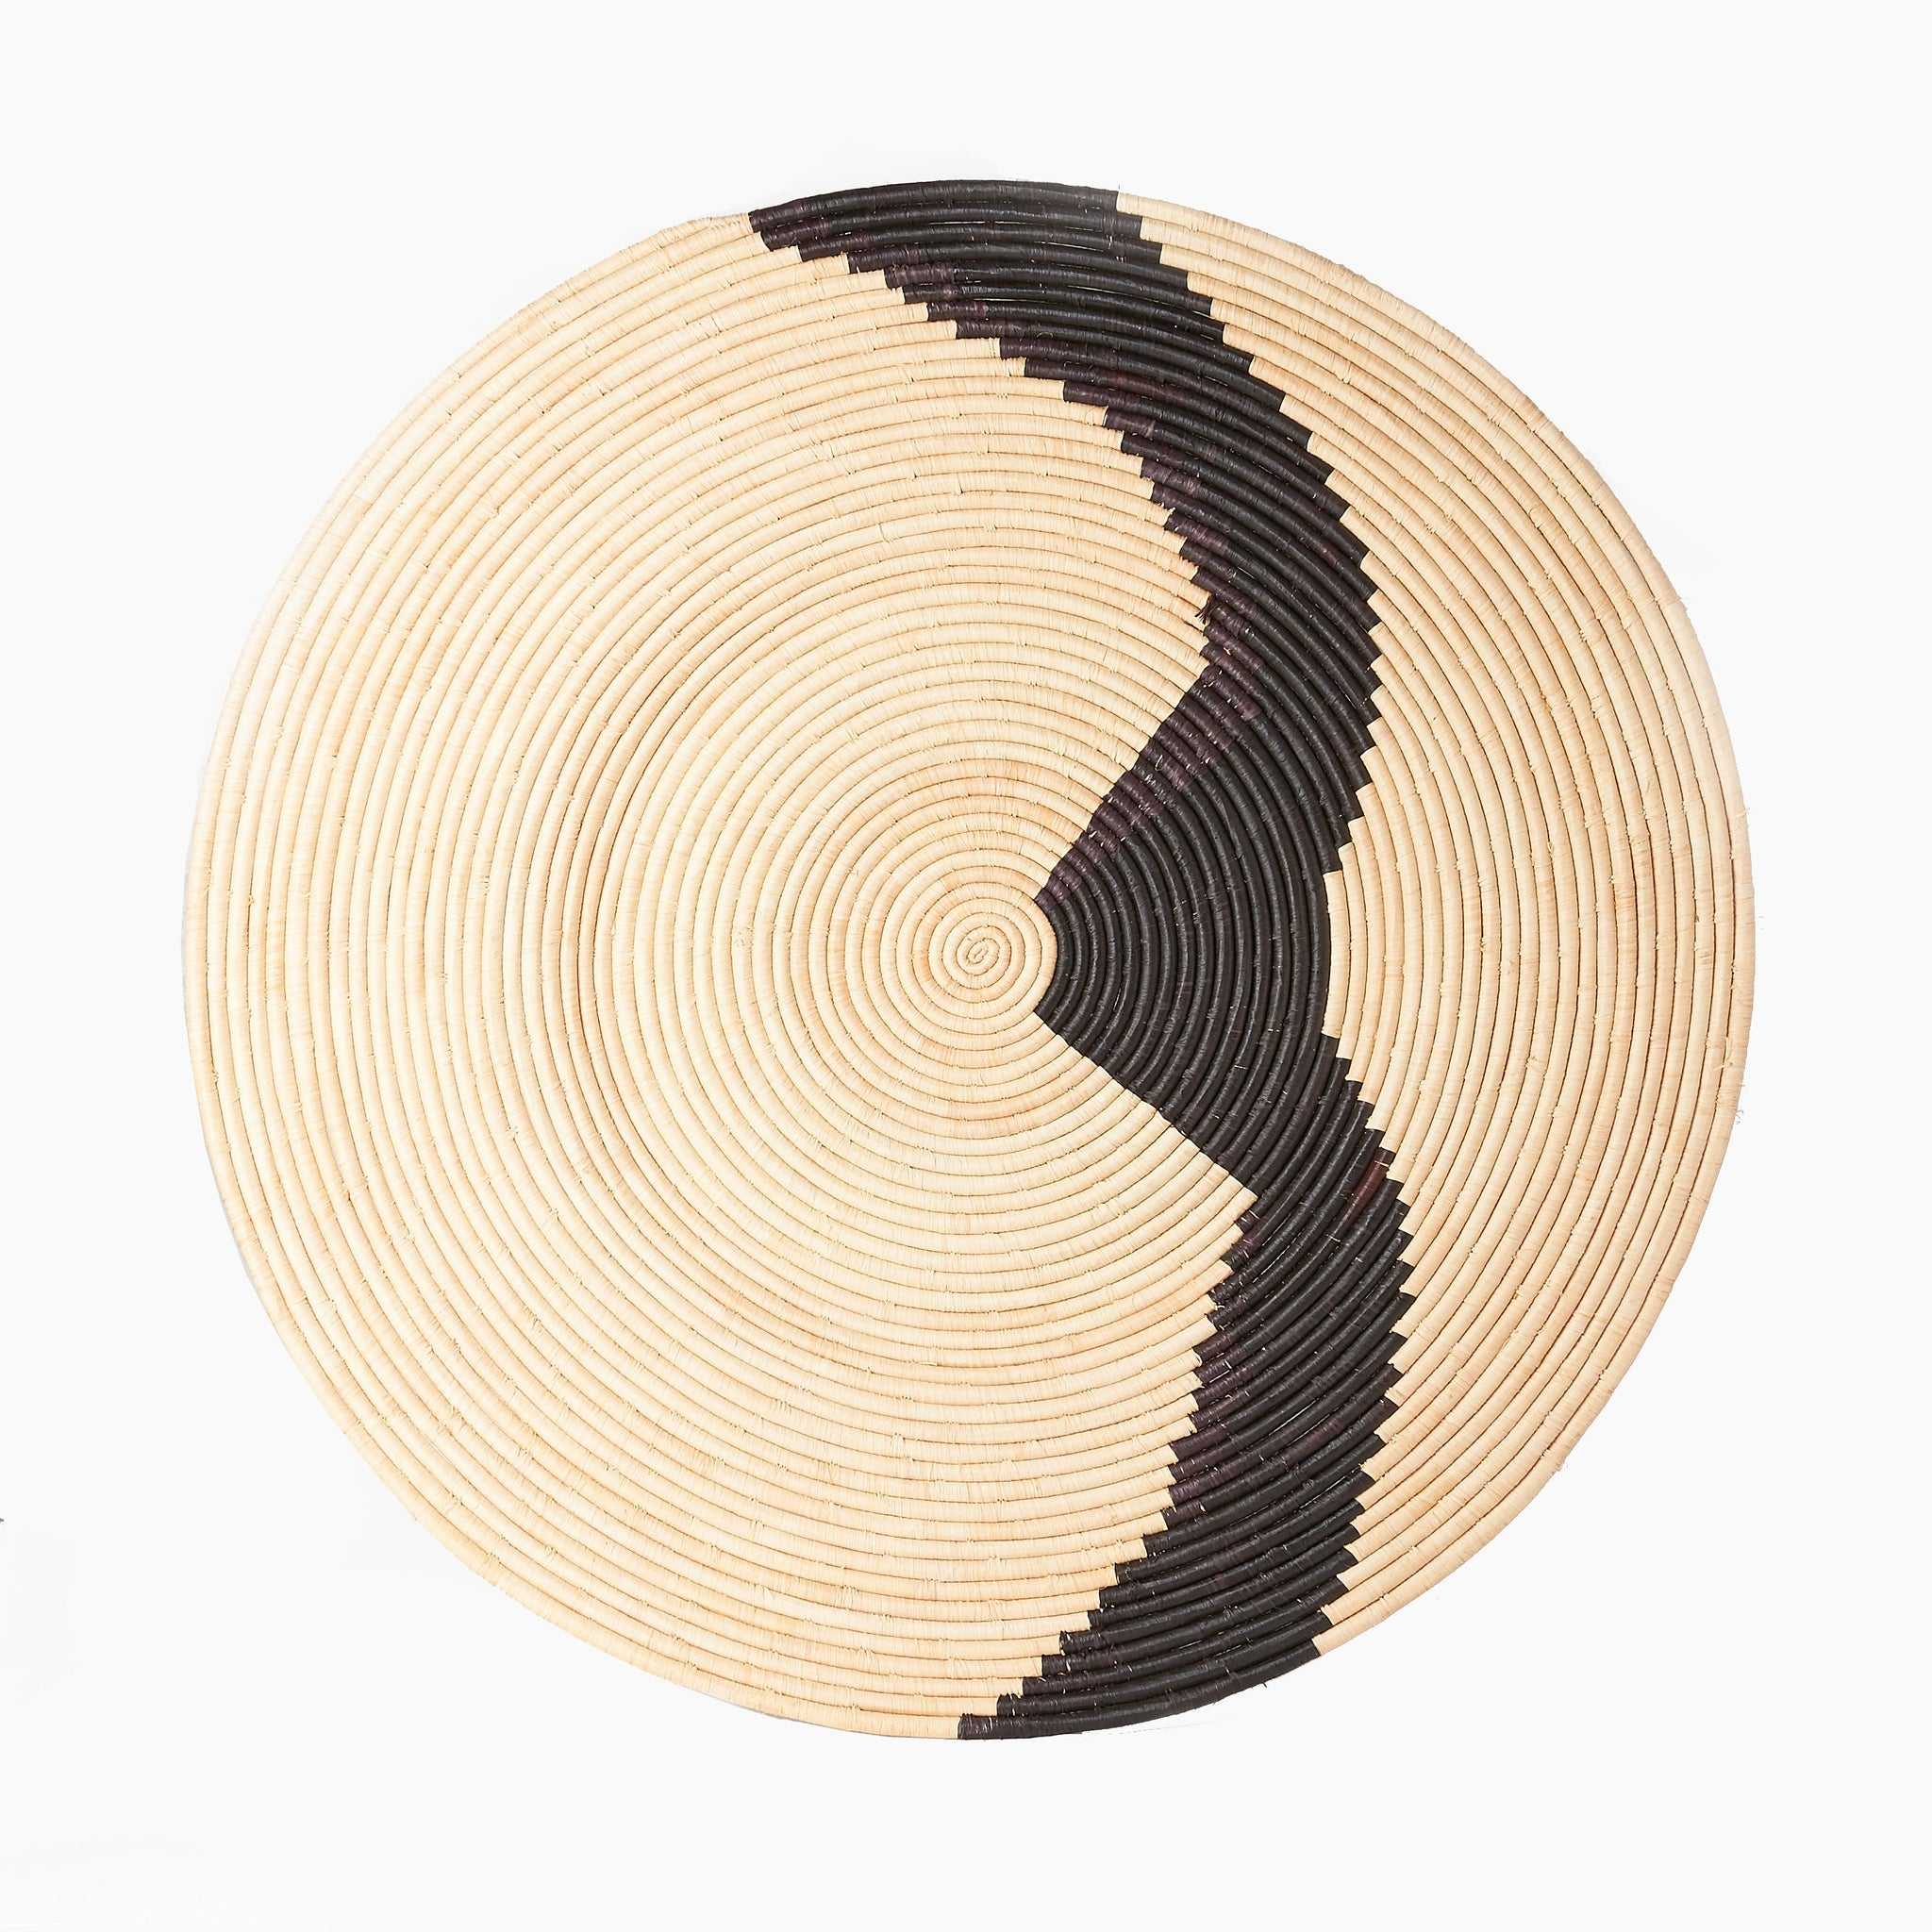 Woven African Wall Basket in Large